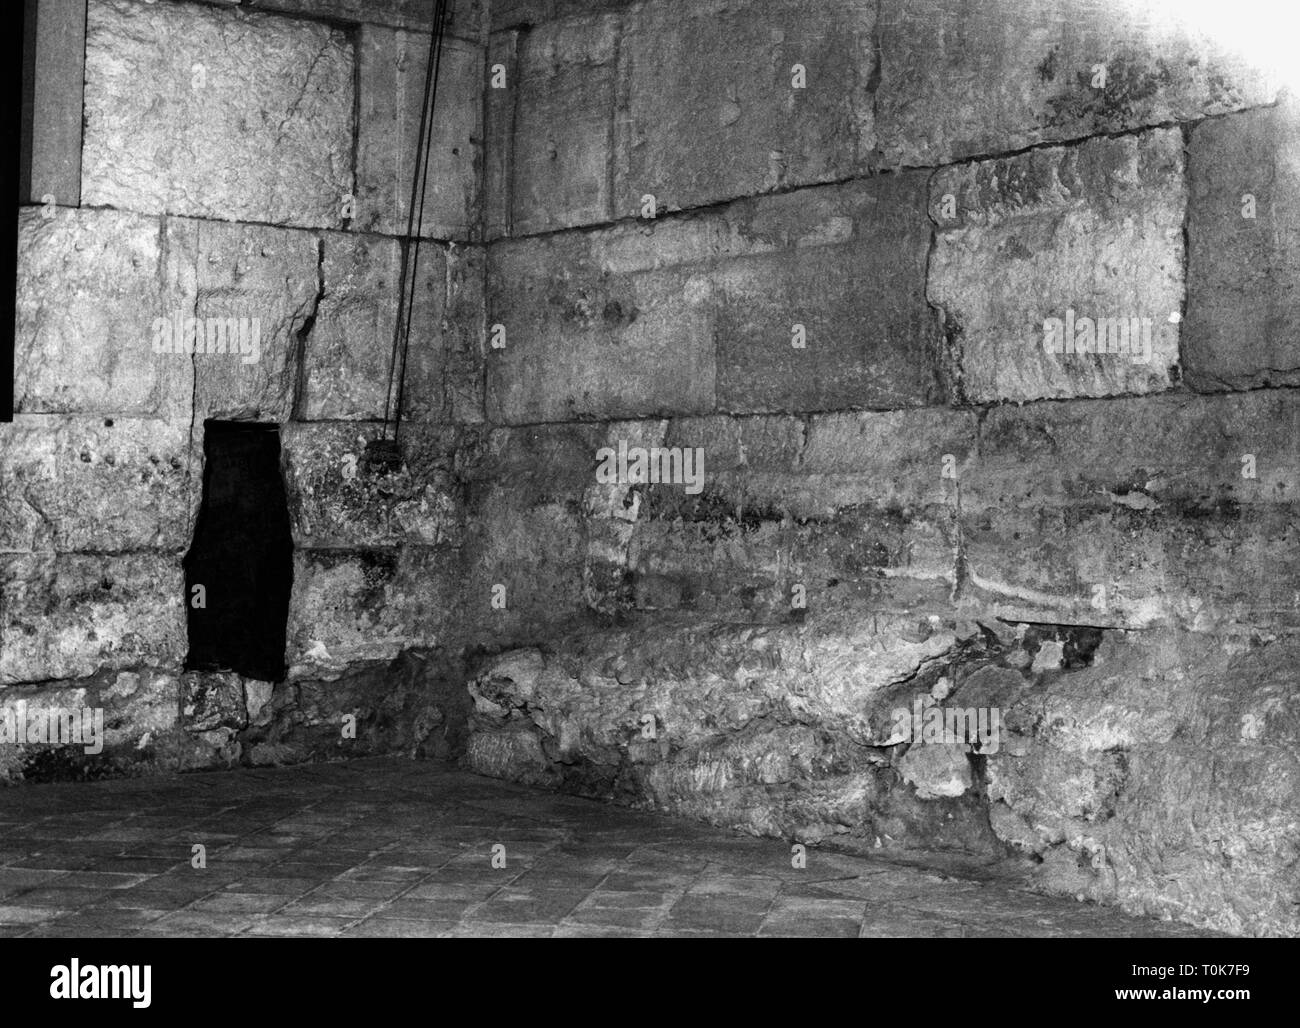 geography / travel, Israel, Nazareth, Church of the Holy Sepulchre, interior view, crusader belfry, 1962, Additional-Rights-Clearance-Info-Not-Available - Stock Image